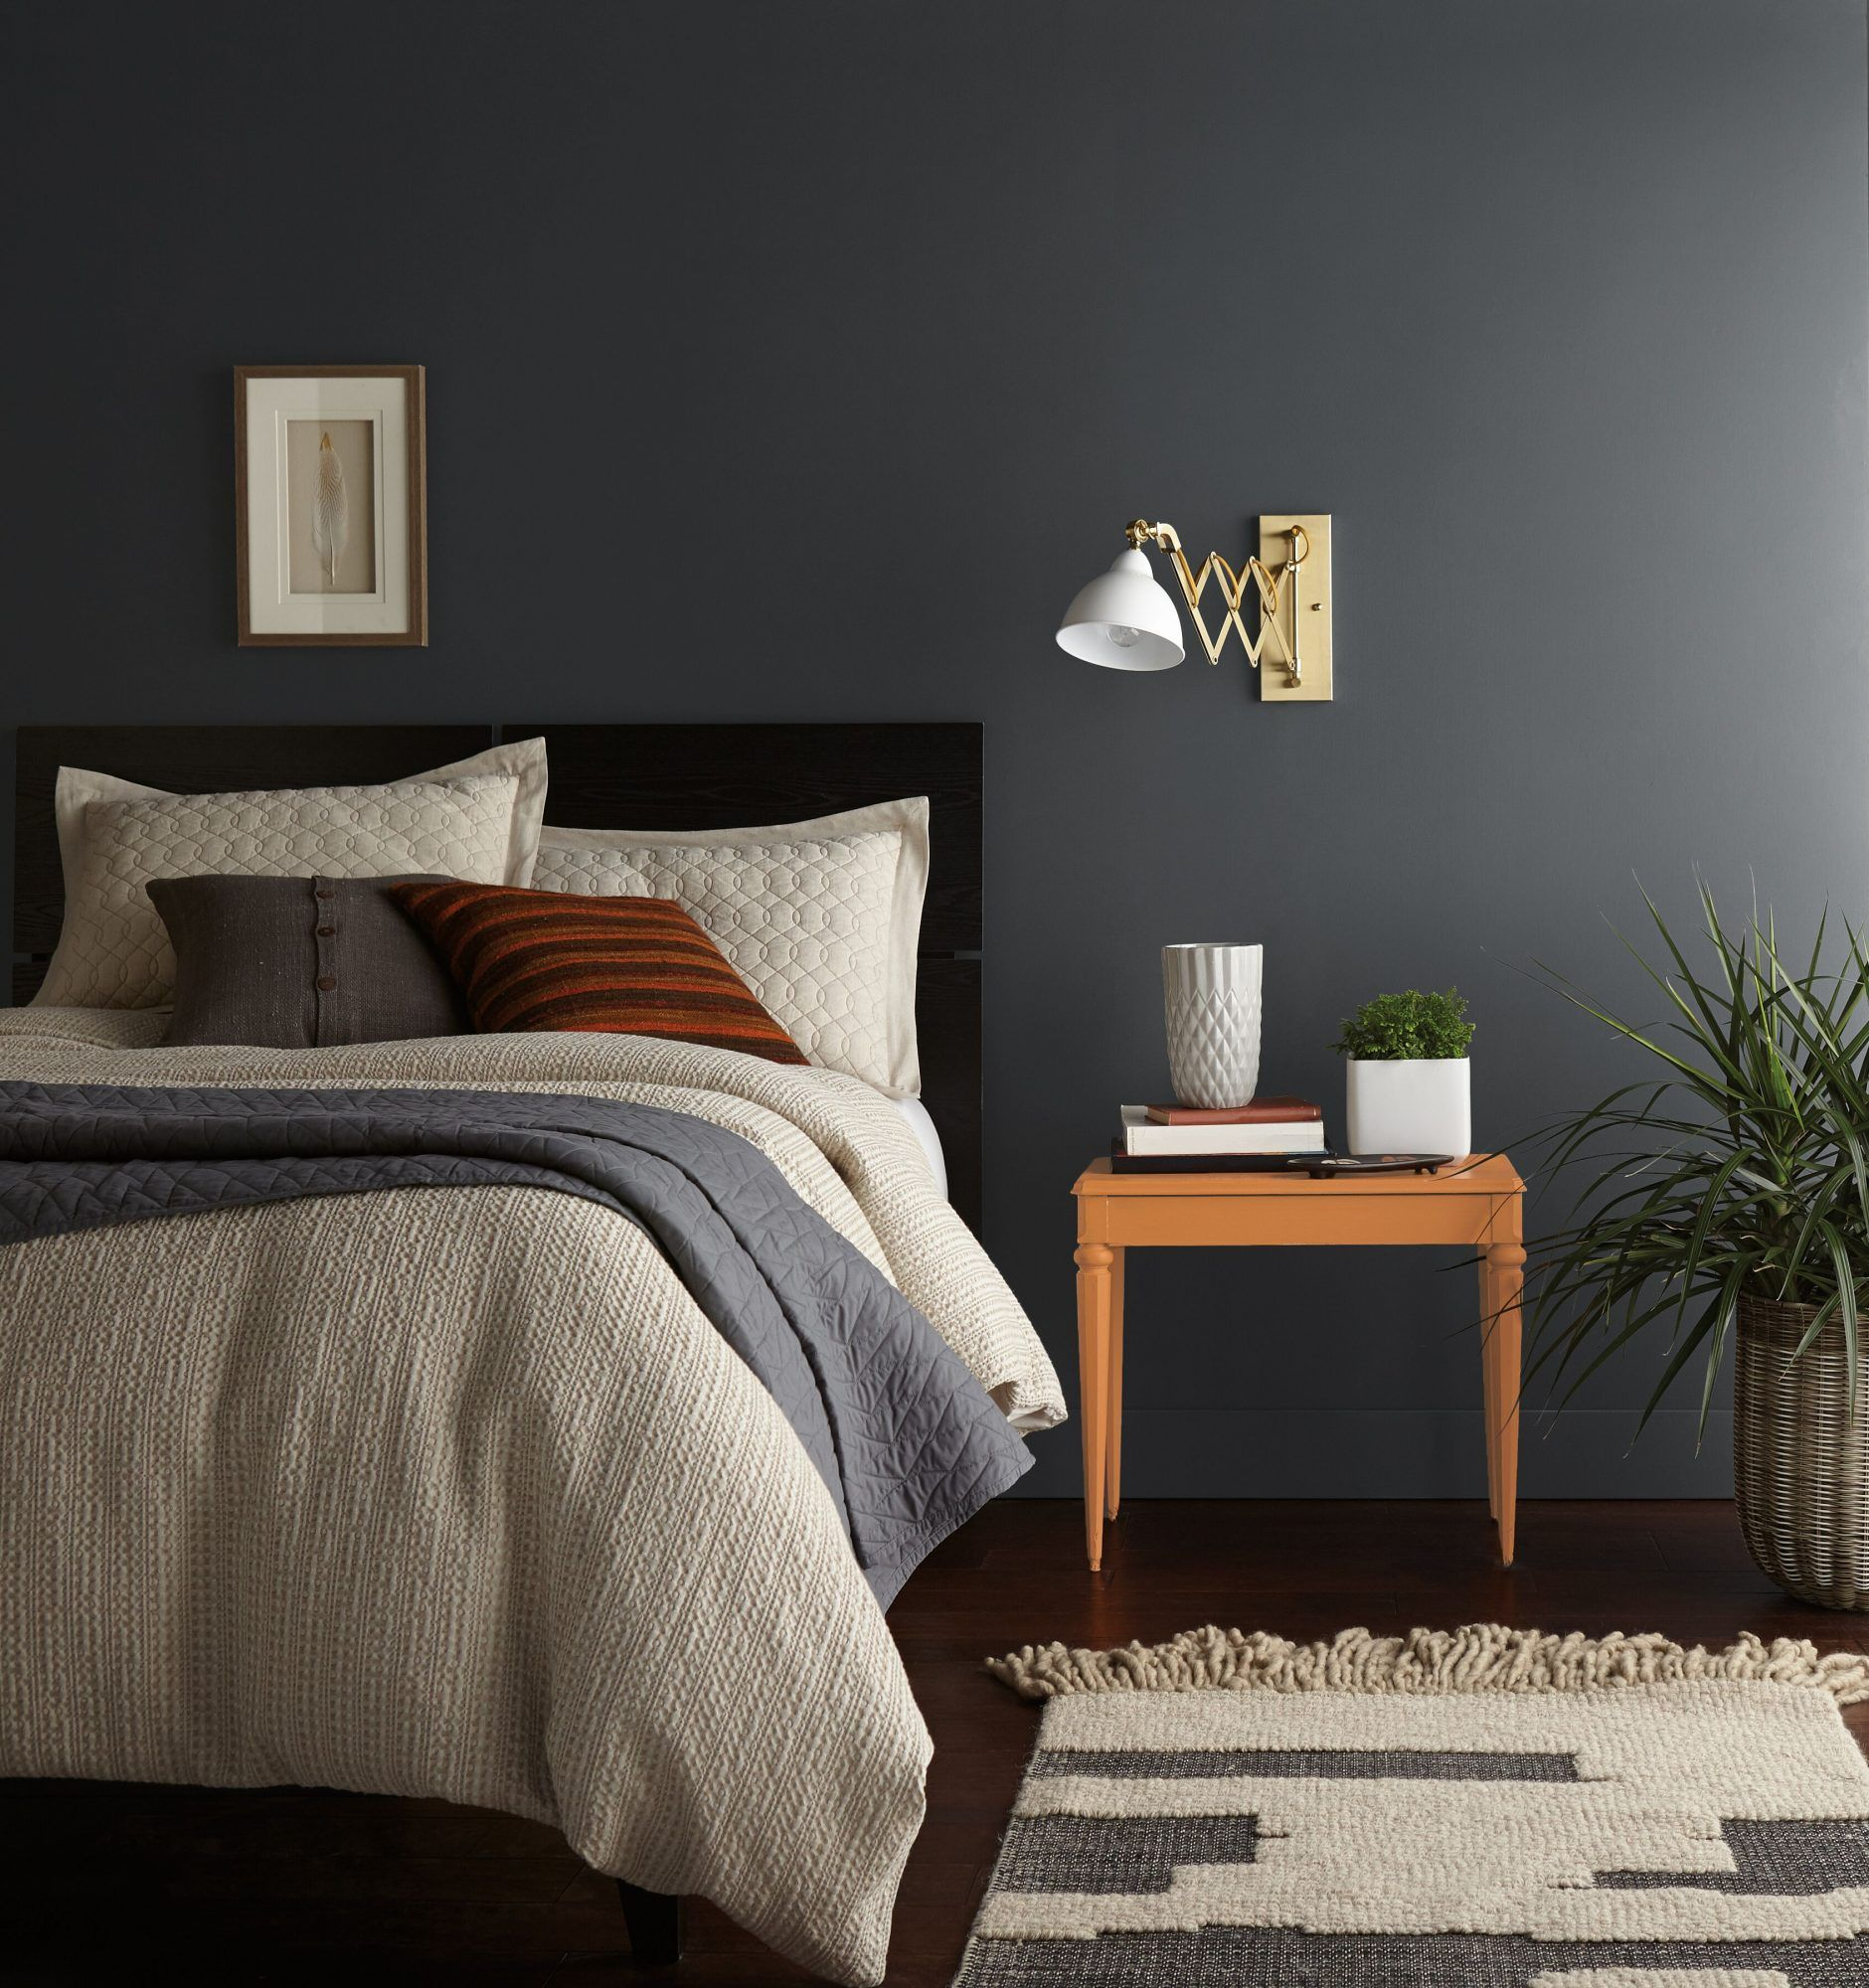 The Best Paint Color for You, Based on Your Enneagram Type